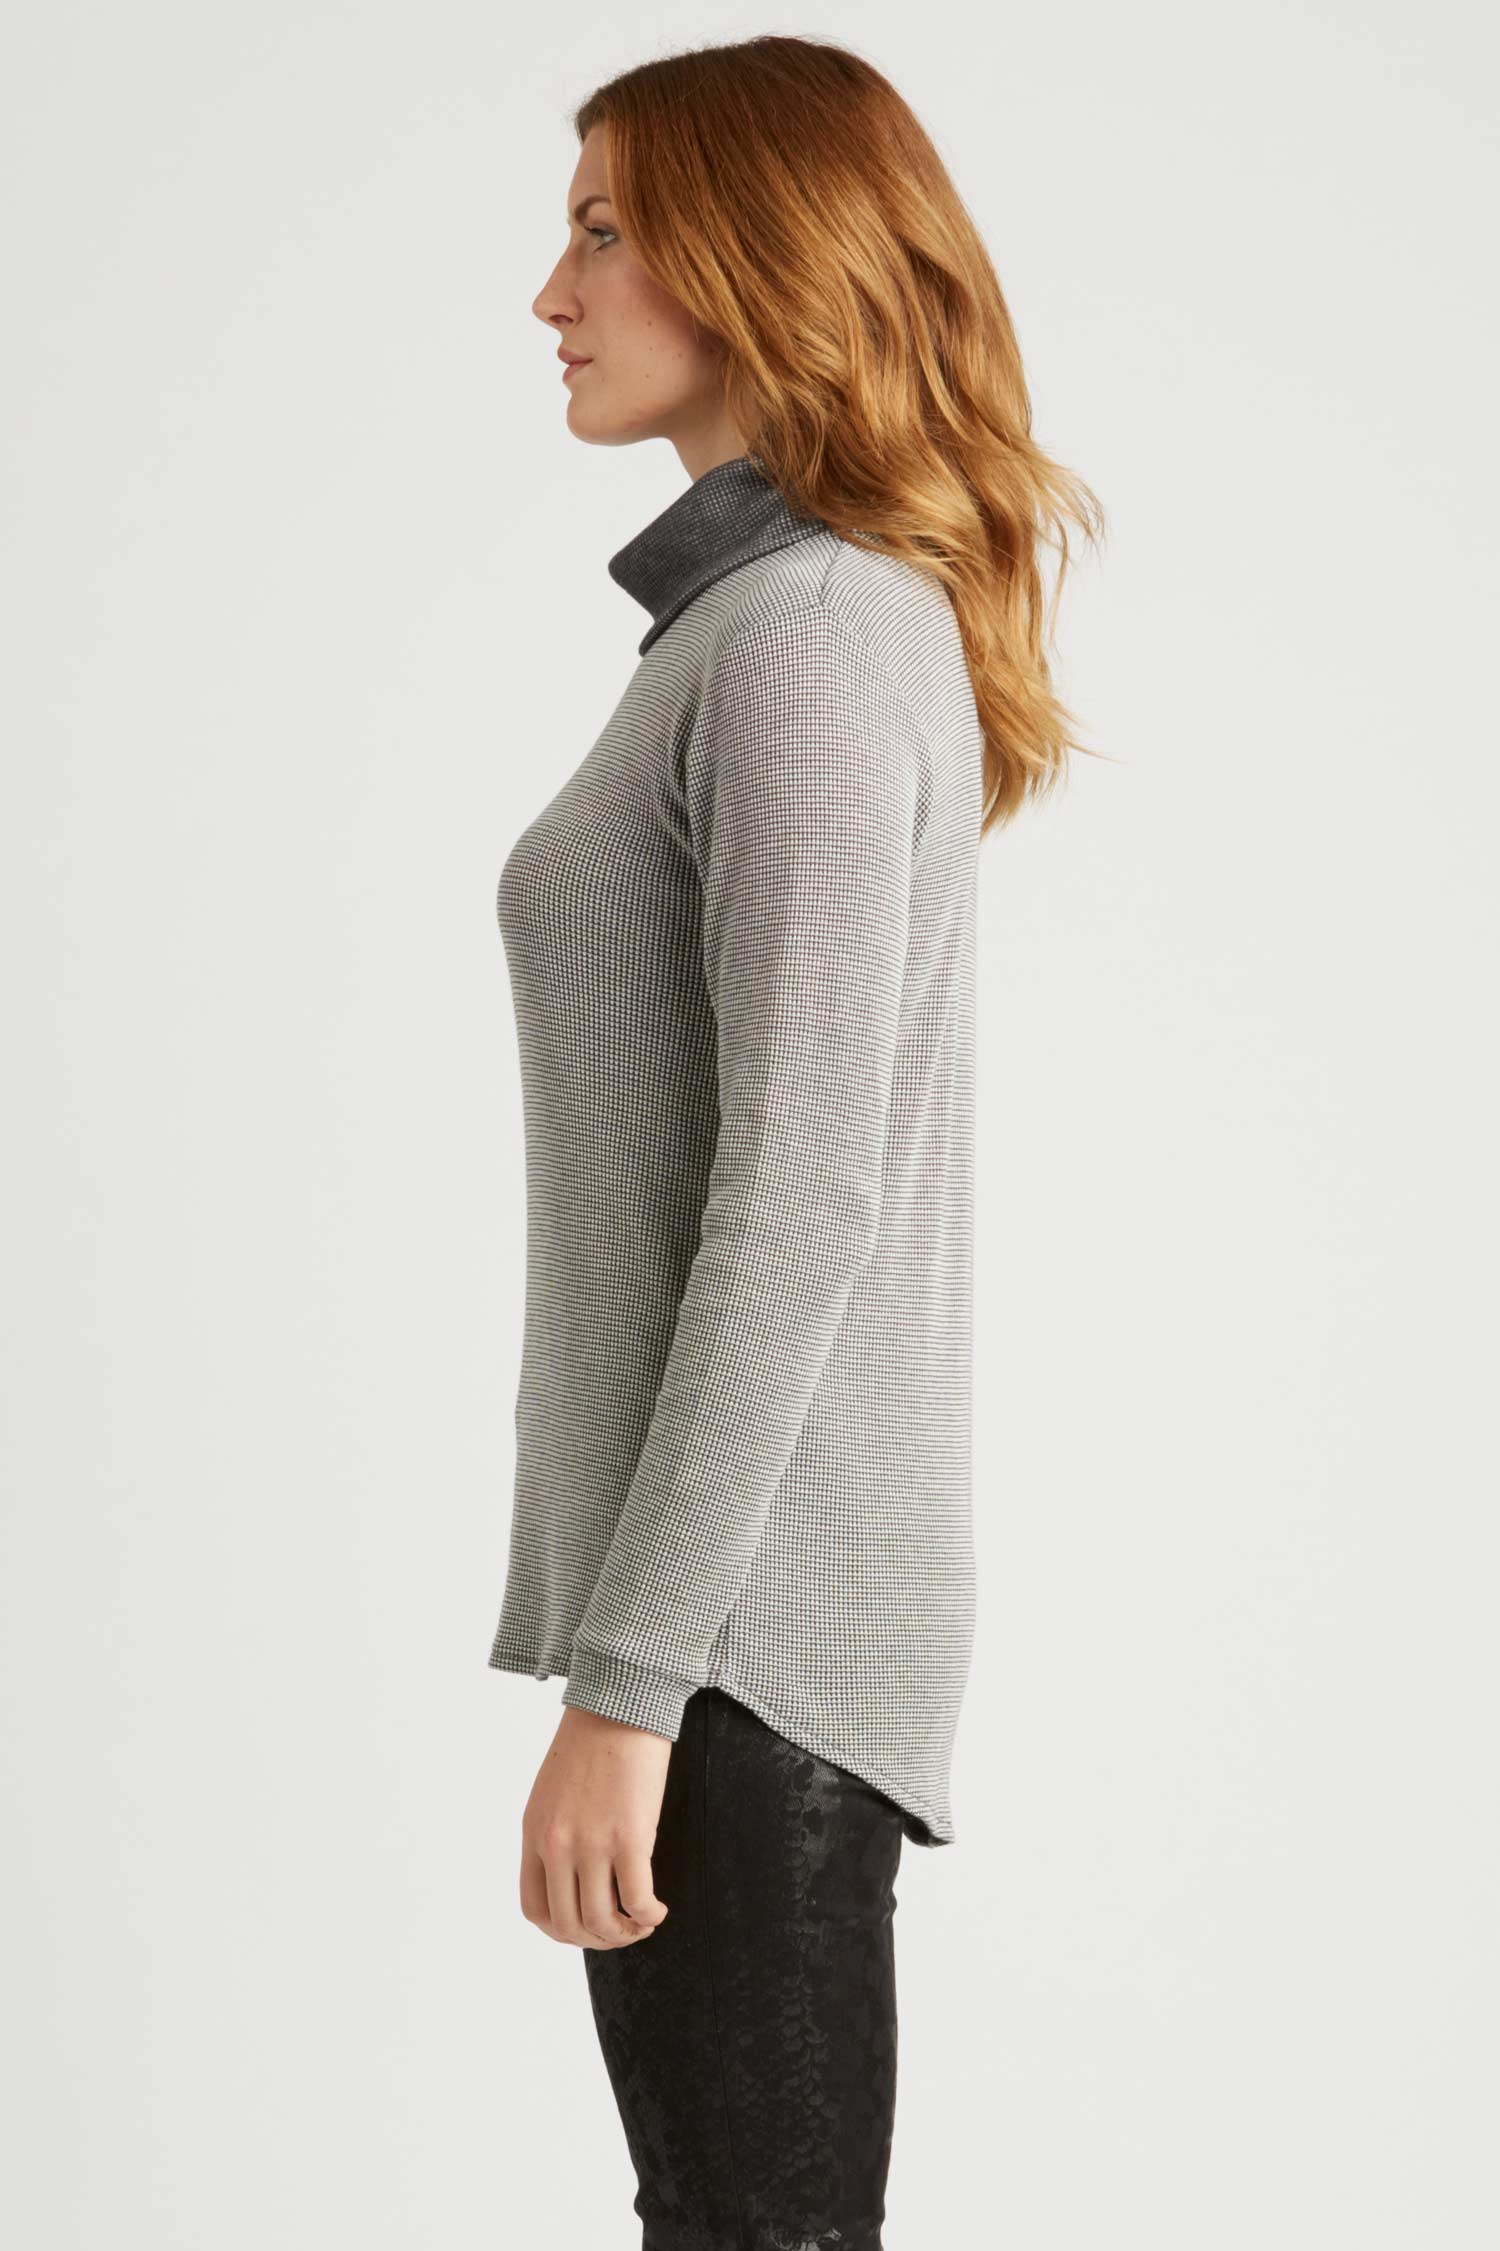 Womens Cowl Neck Pullover Top | Gray | Organic Cotton Clothing